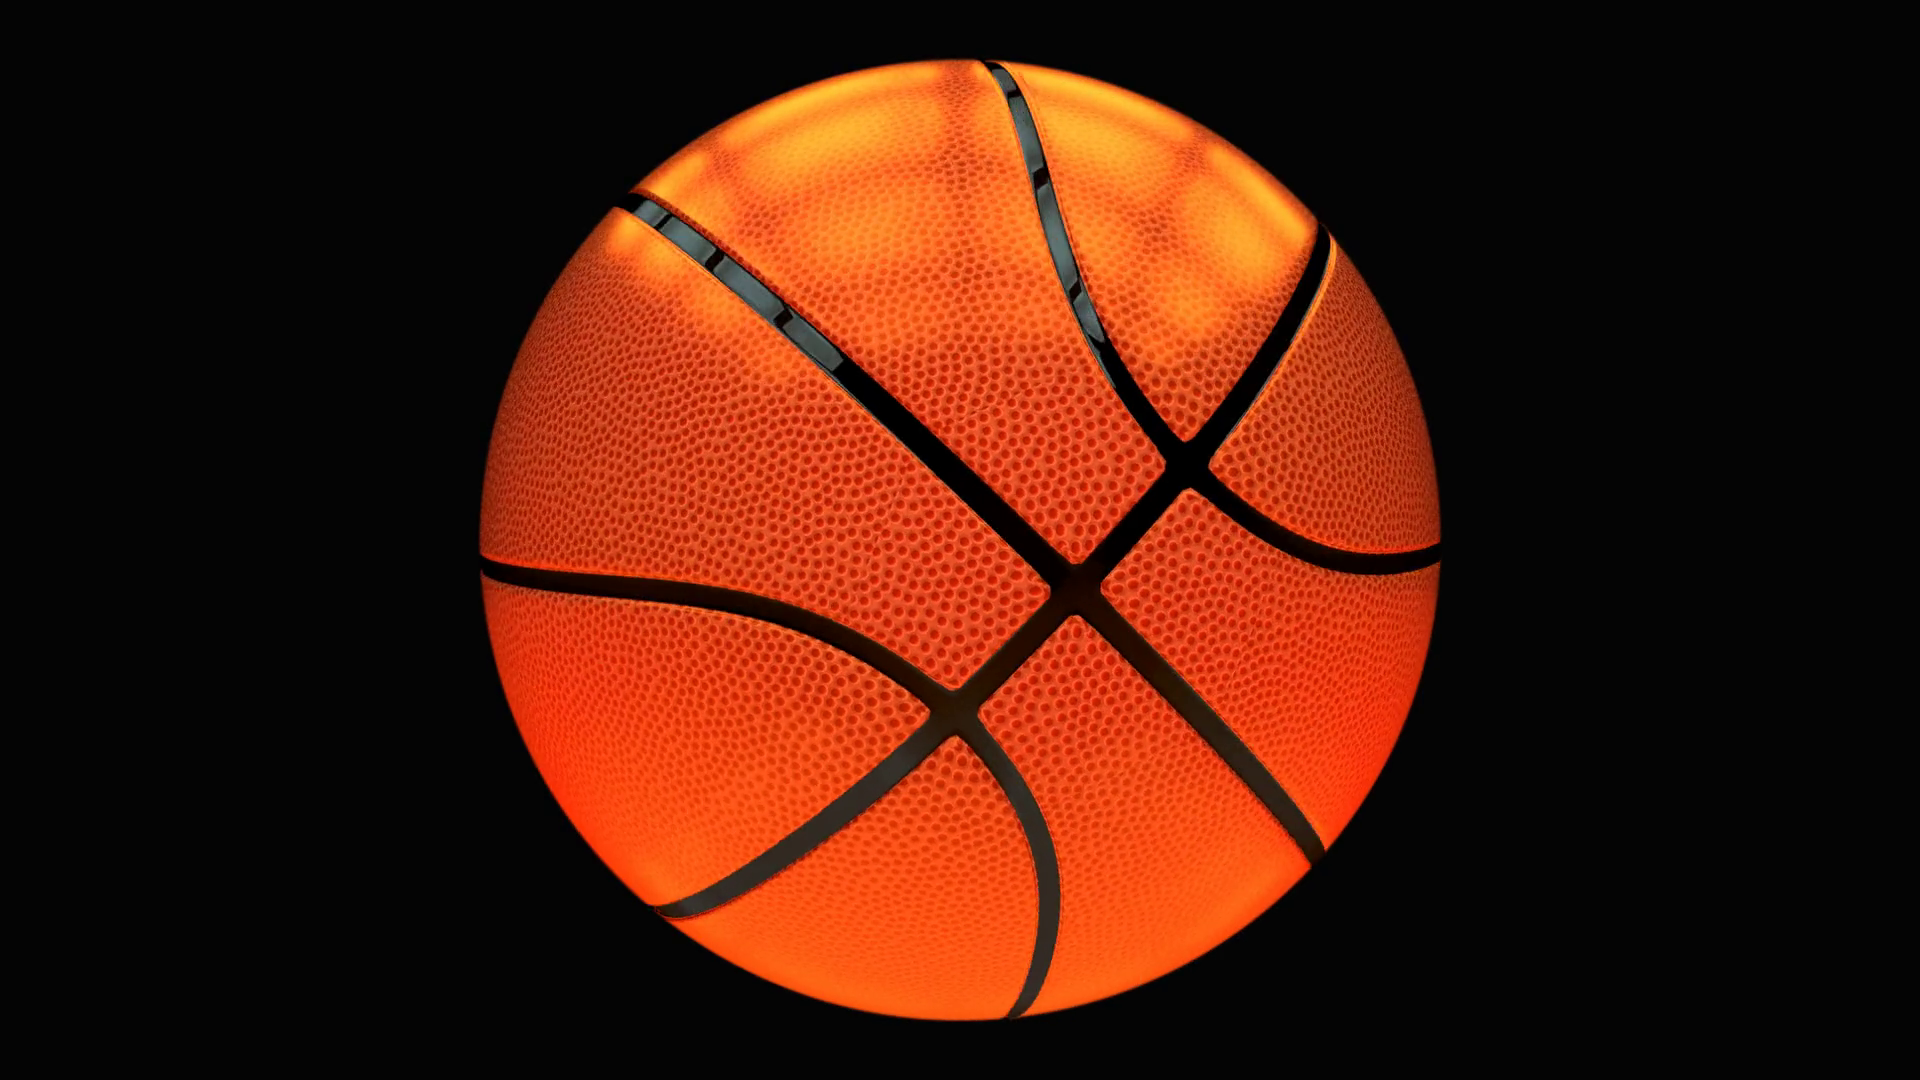 images of basketball